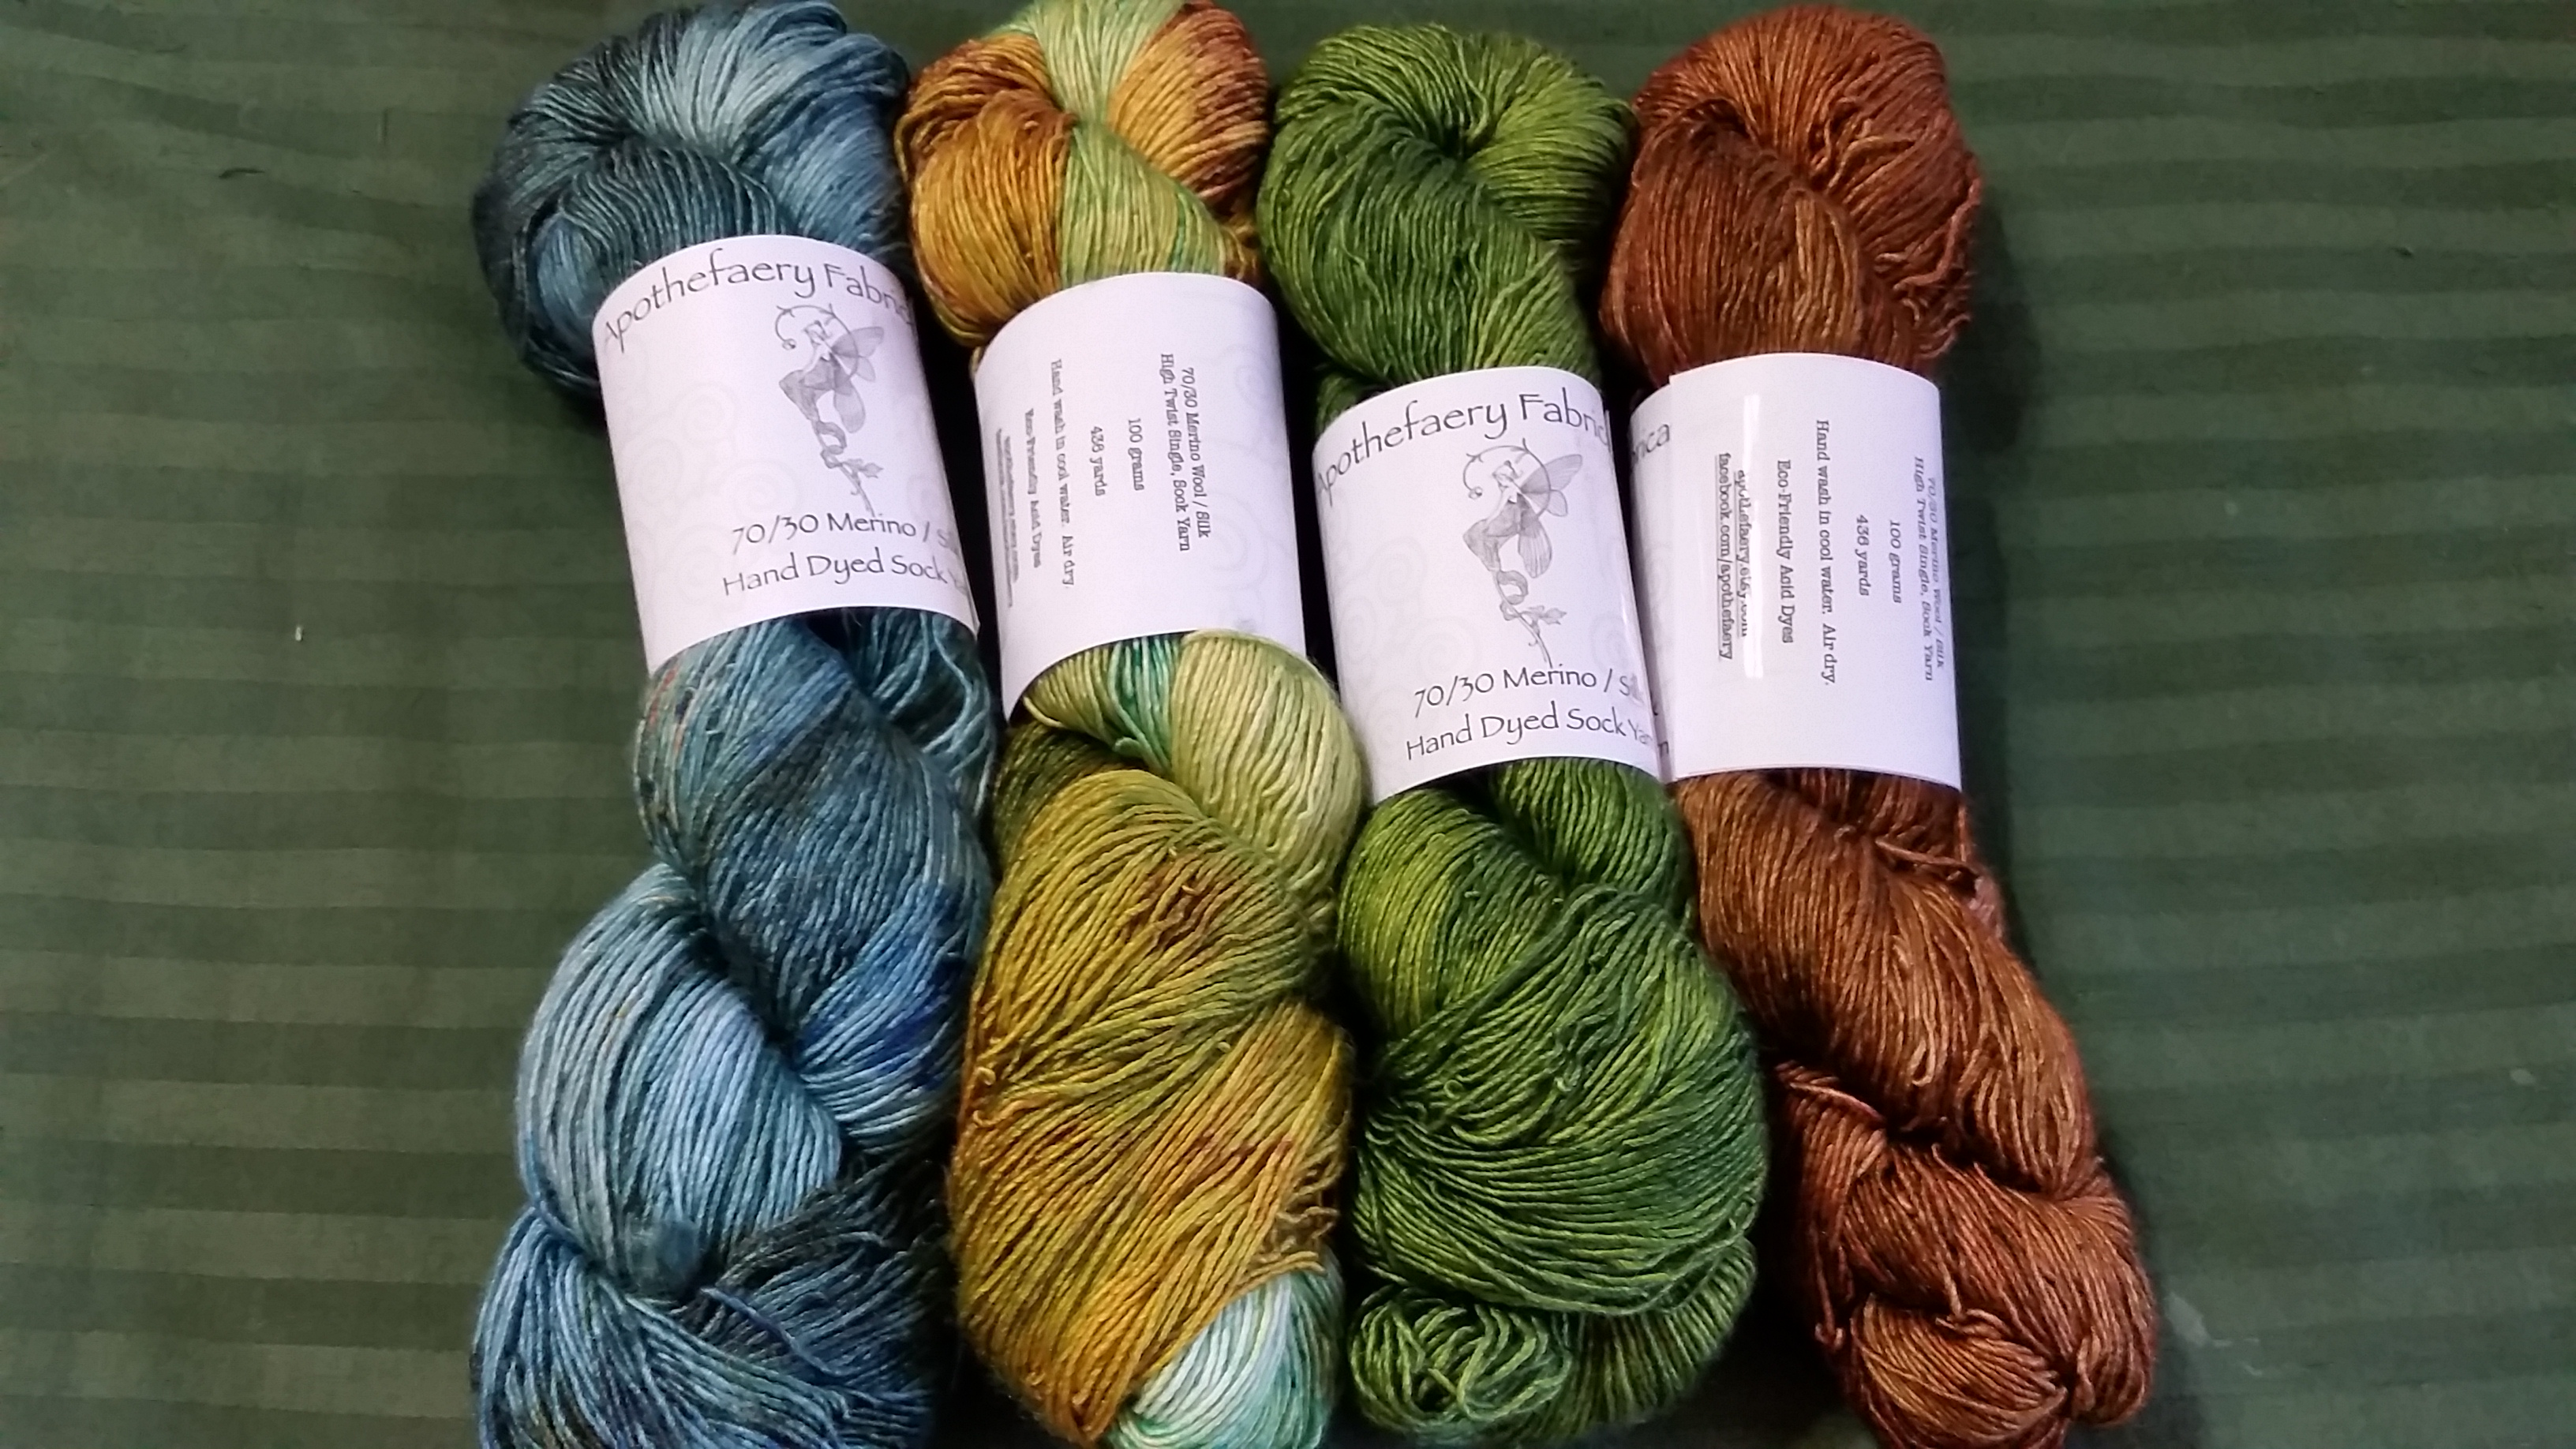 Merino/Silk from Apothefaery Fabrications